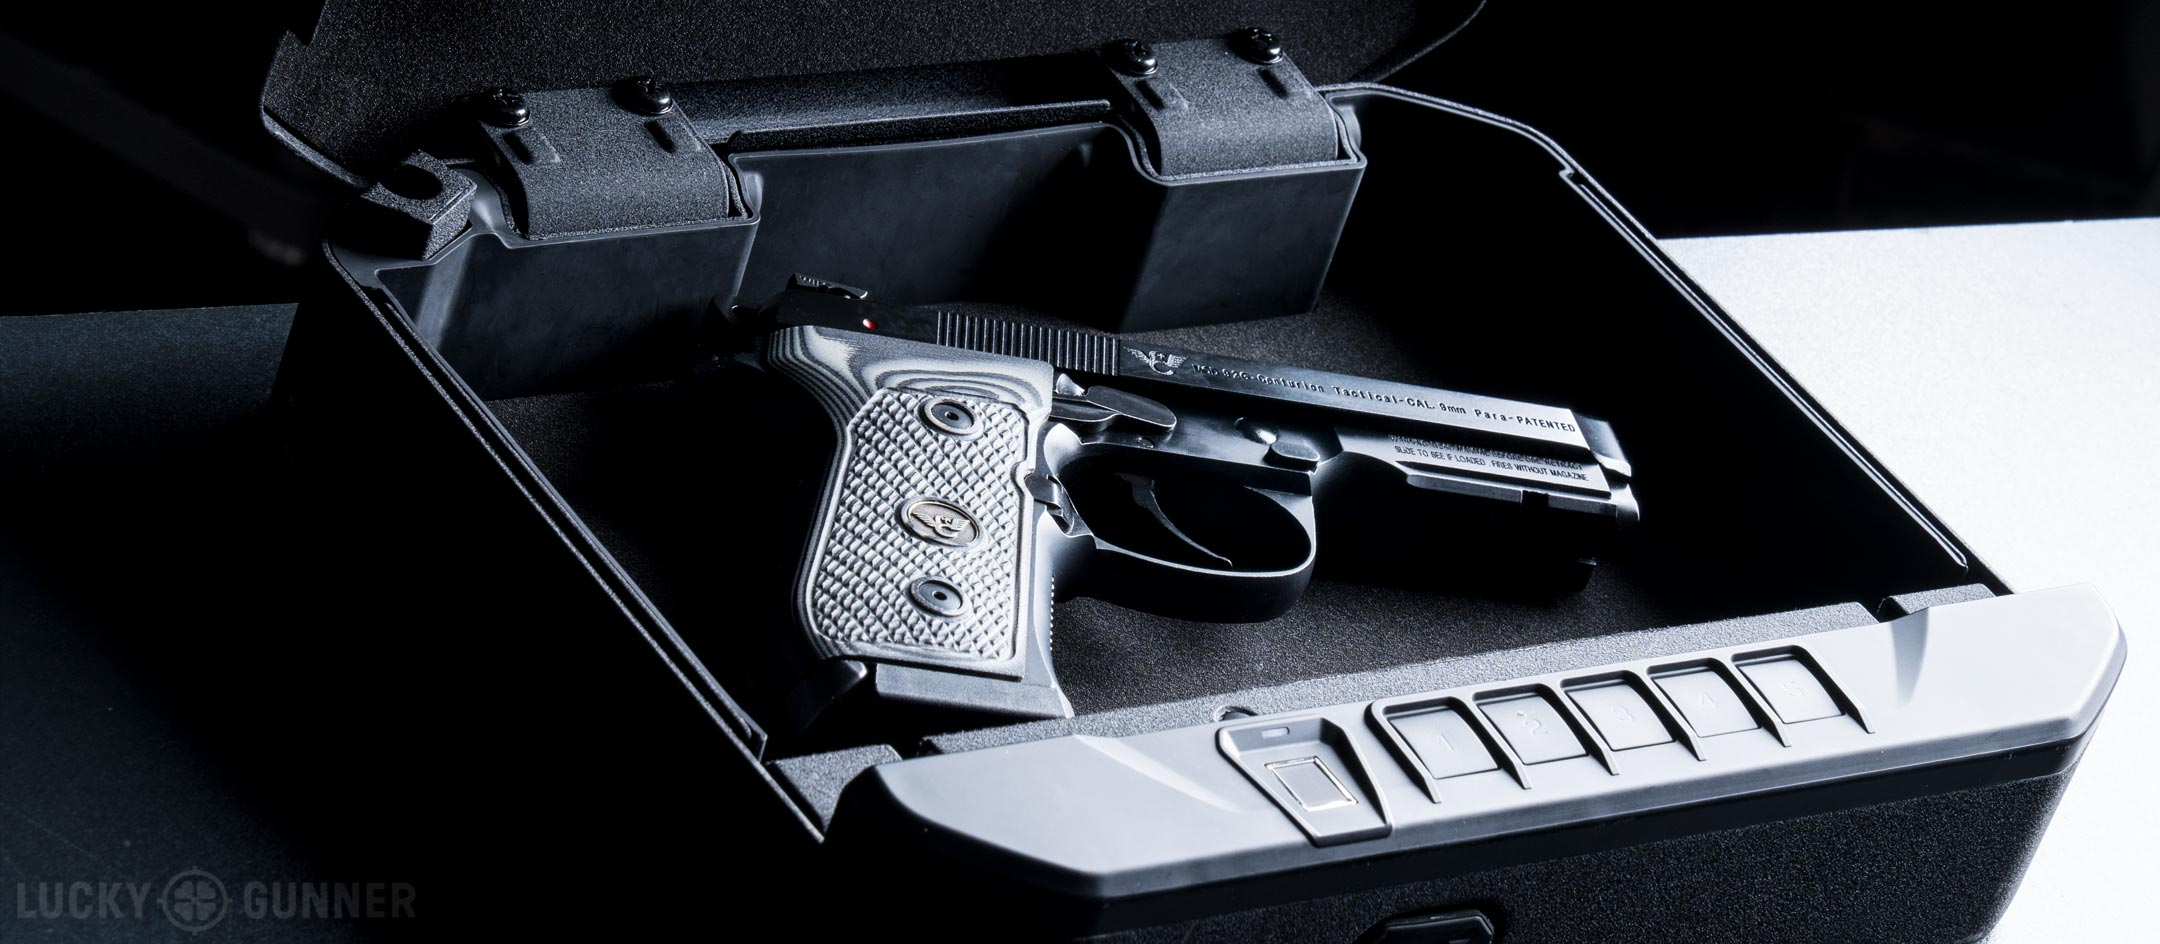 Cheap Safes A Guide To Quick Access Pistol Safes Lucky Gunner Lounge